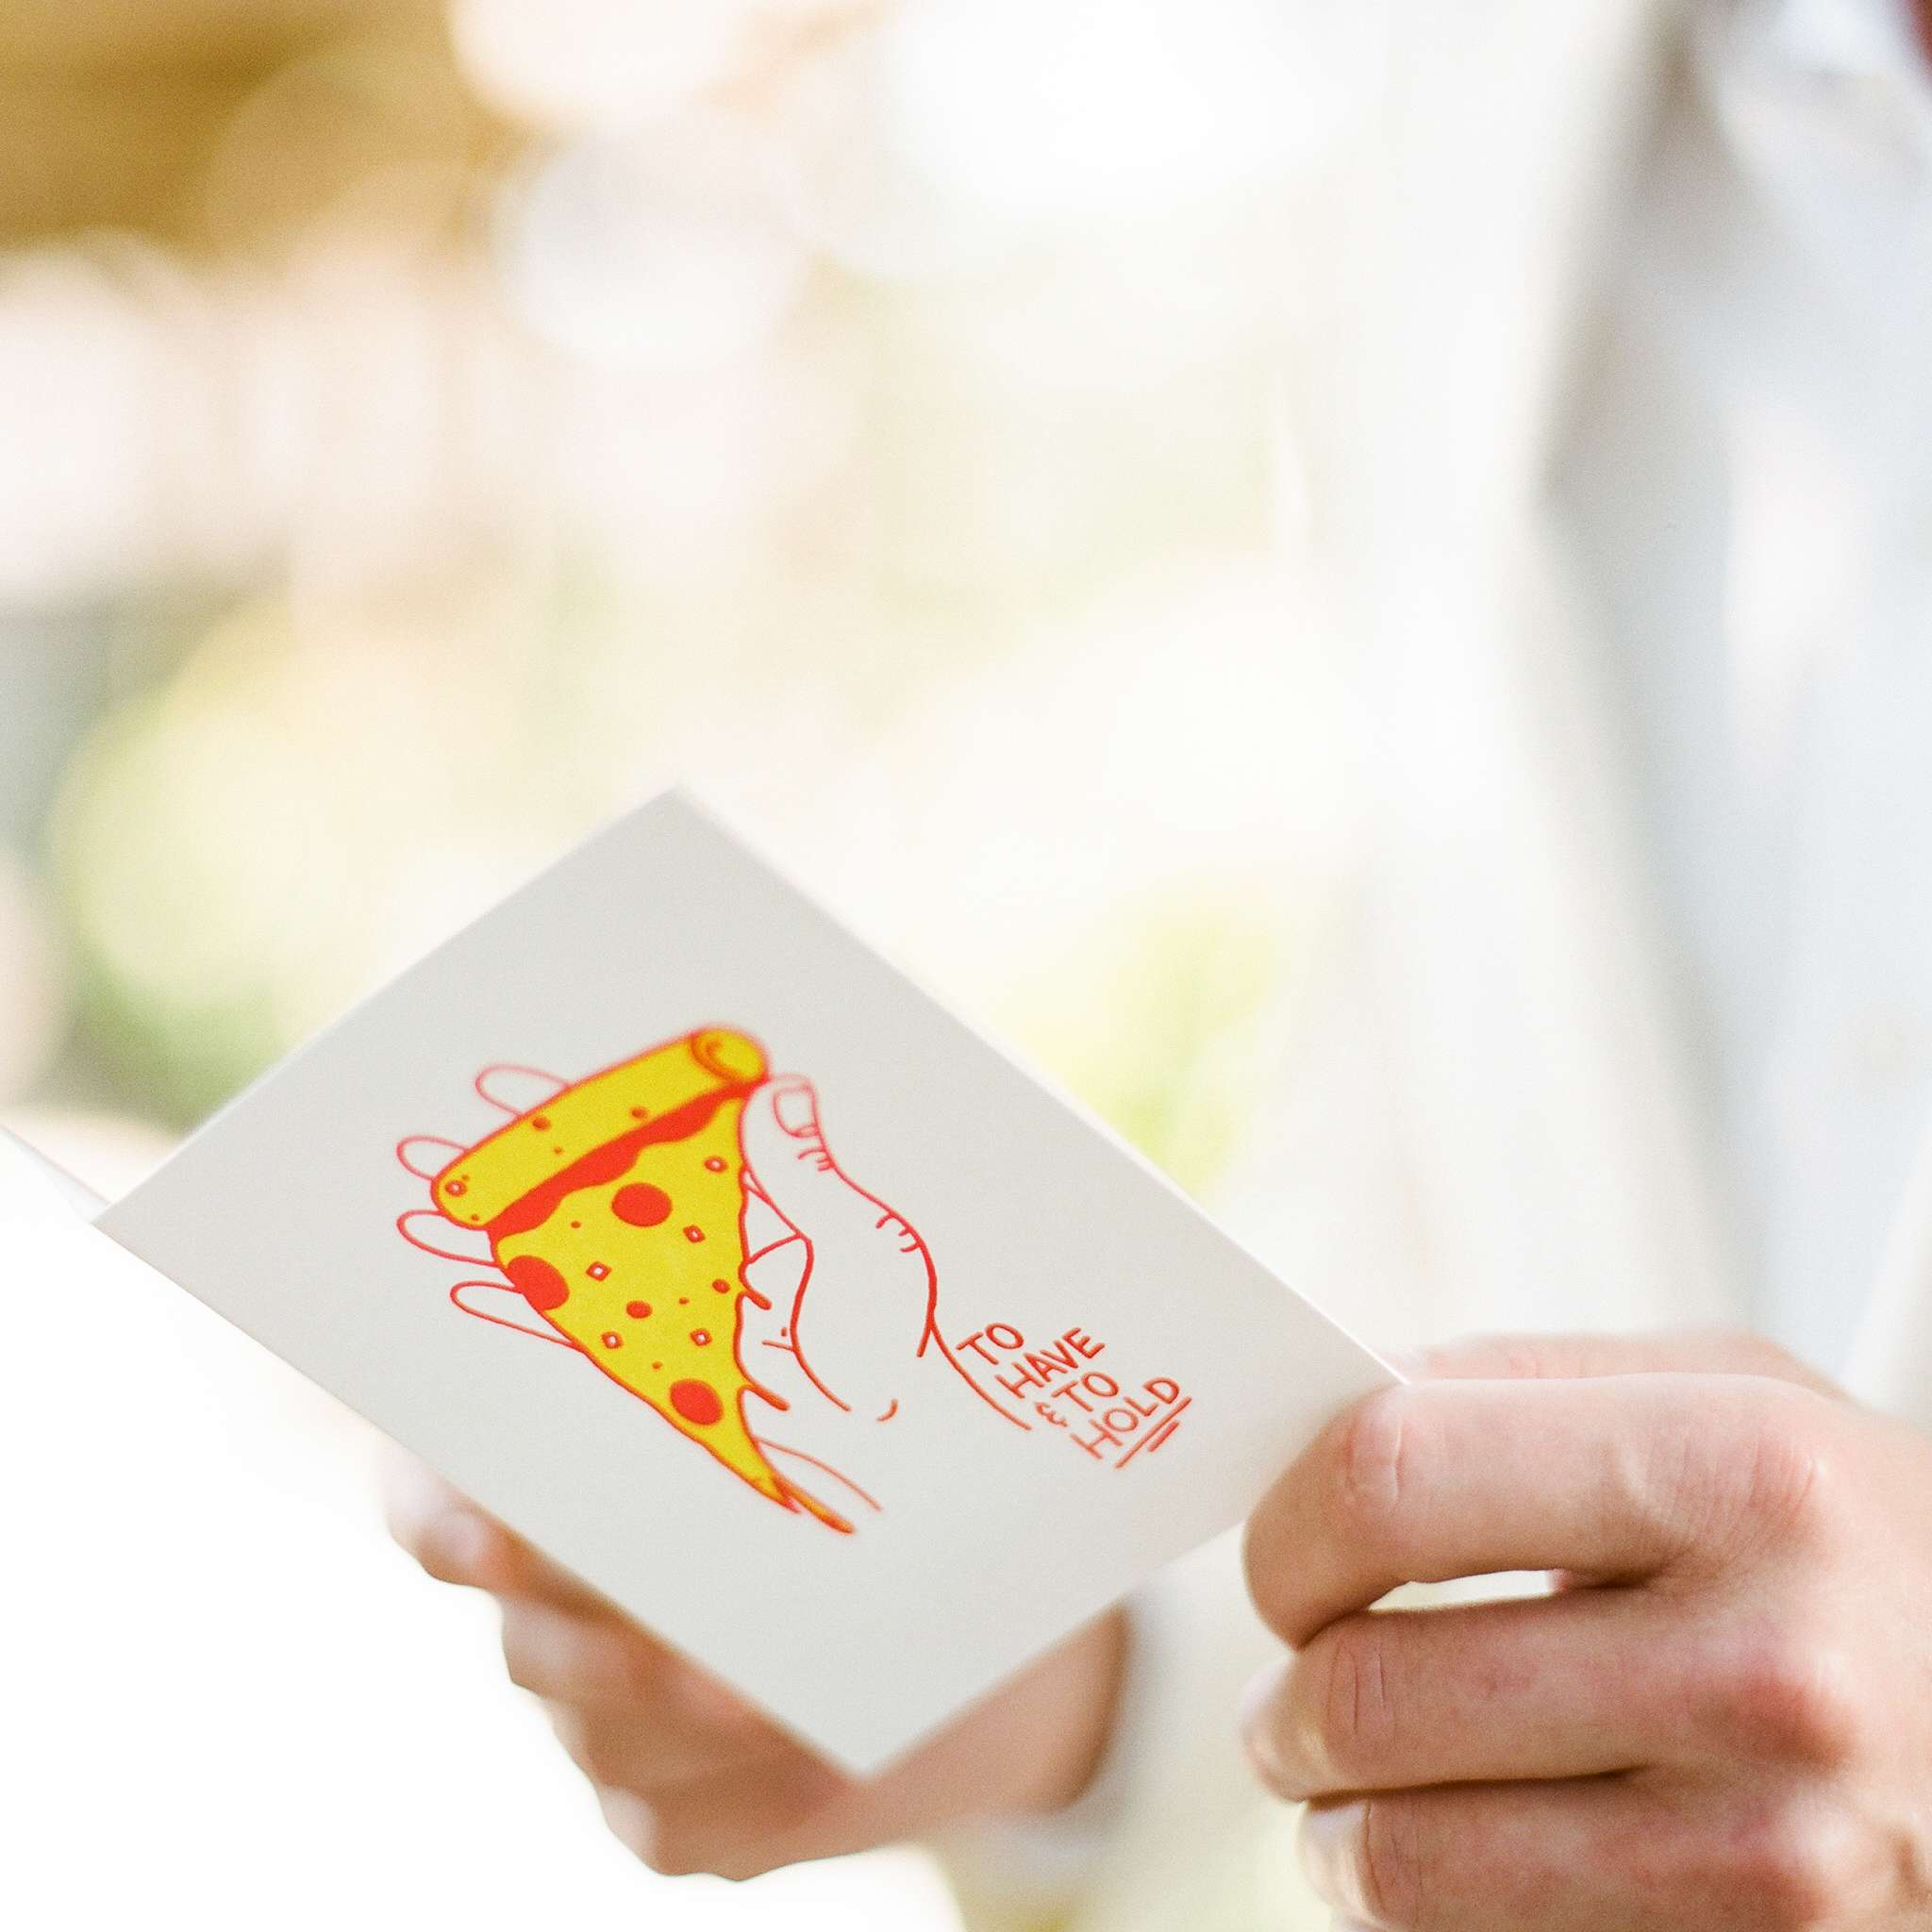 Person reading a card with a picture of a slice of pizza on the front that says